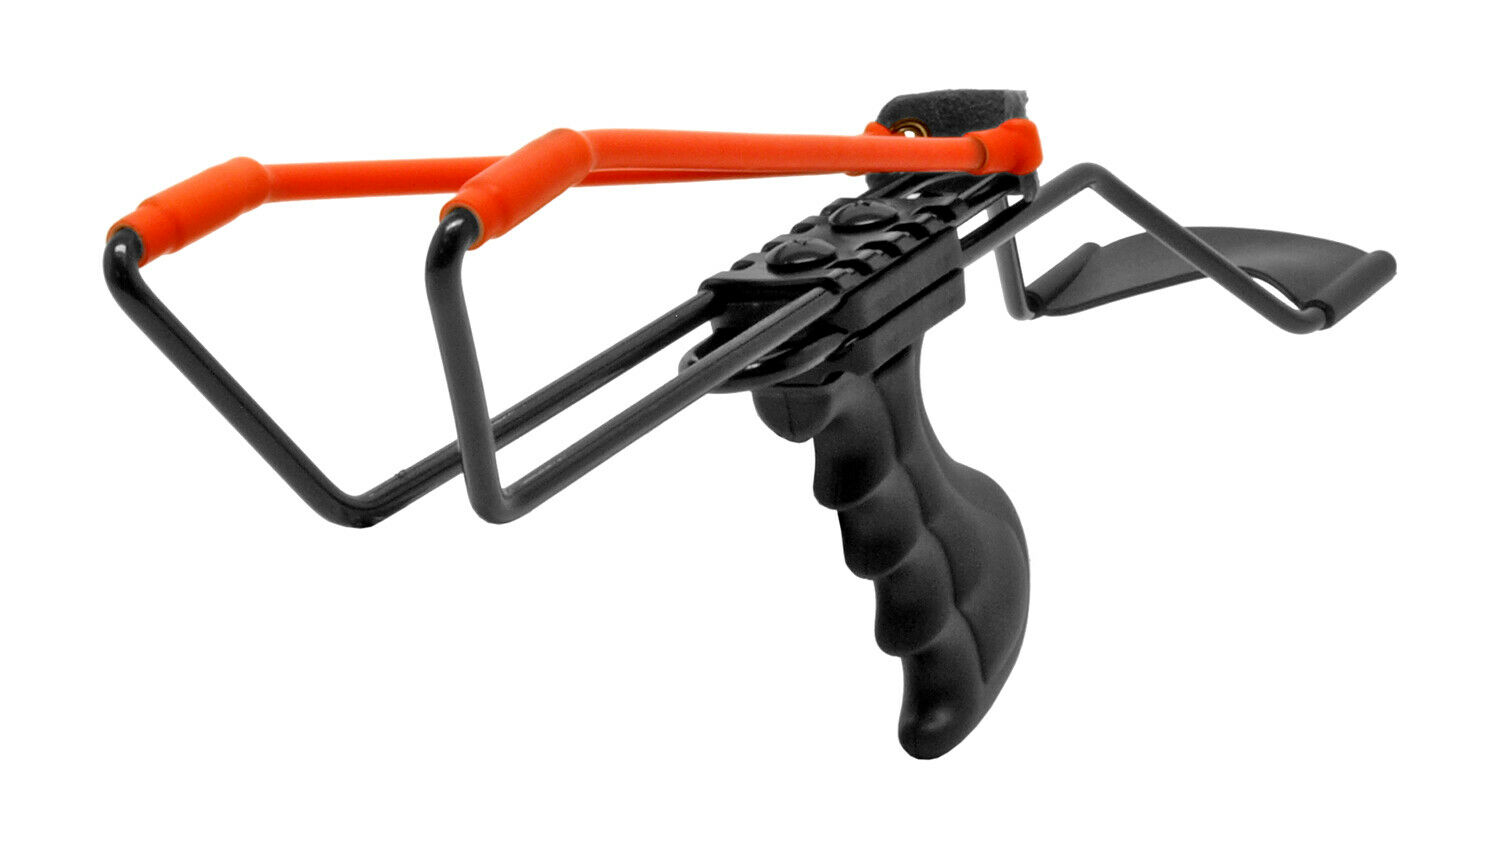 Bolt Hornet High Power Professional Hunting Slingshot Steel Ball Ammo Fully Adjustable